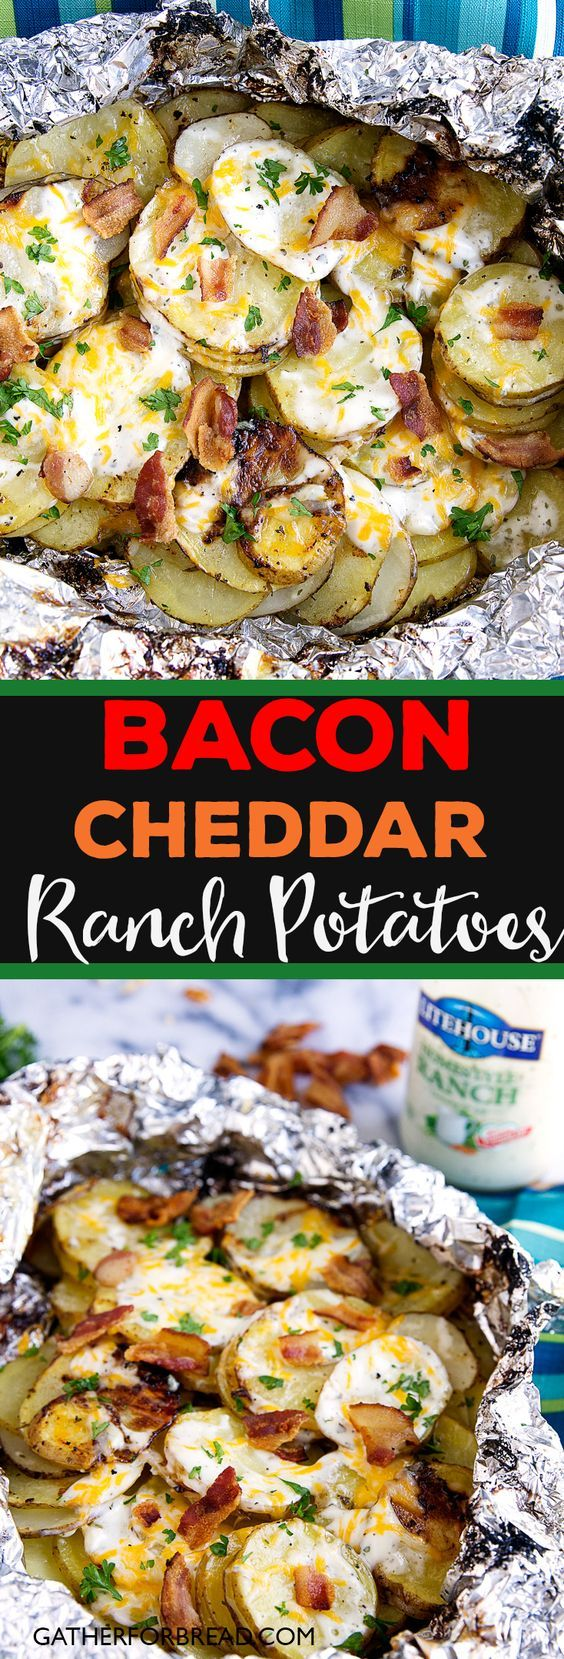 Bacon cheddar ranch potatoes by gatherforbread.com